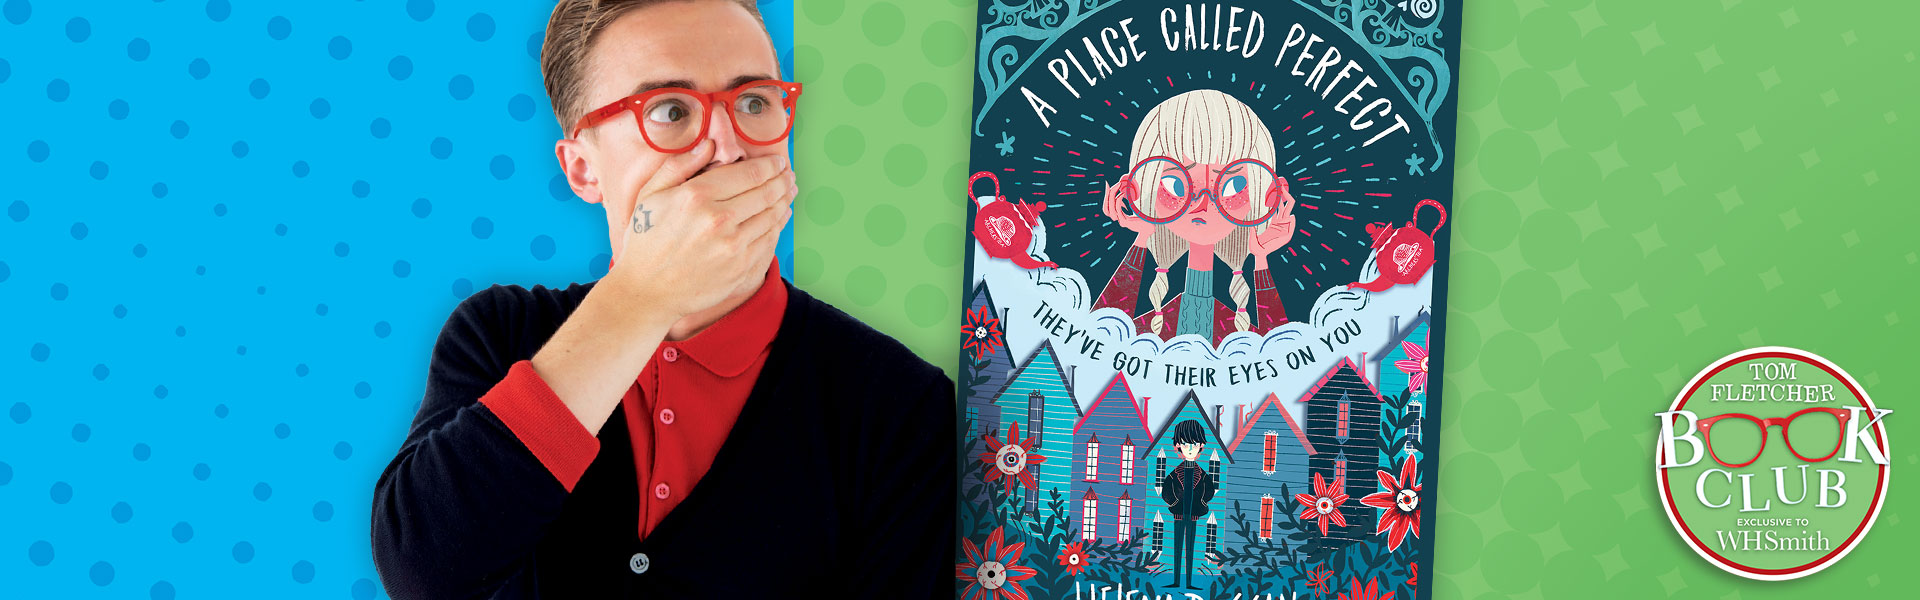 tom-fletcher-book-club-placecalledperfect-review